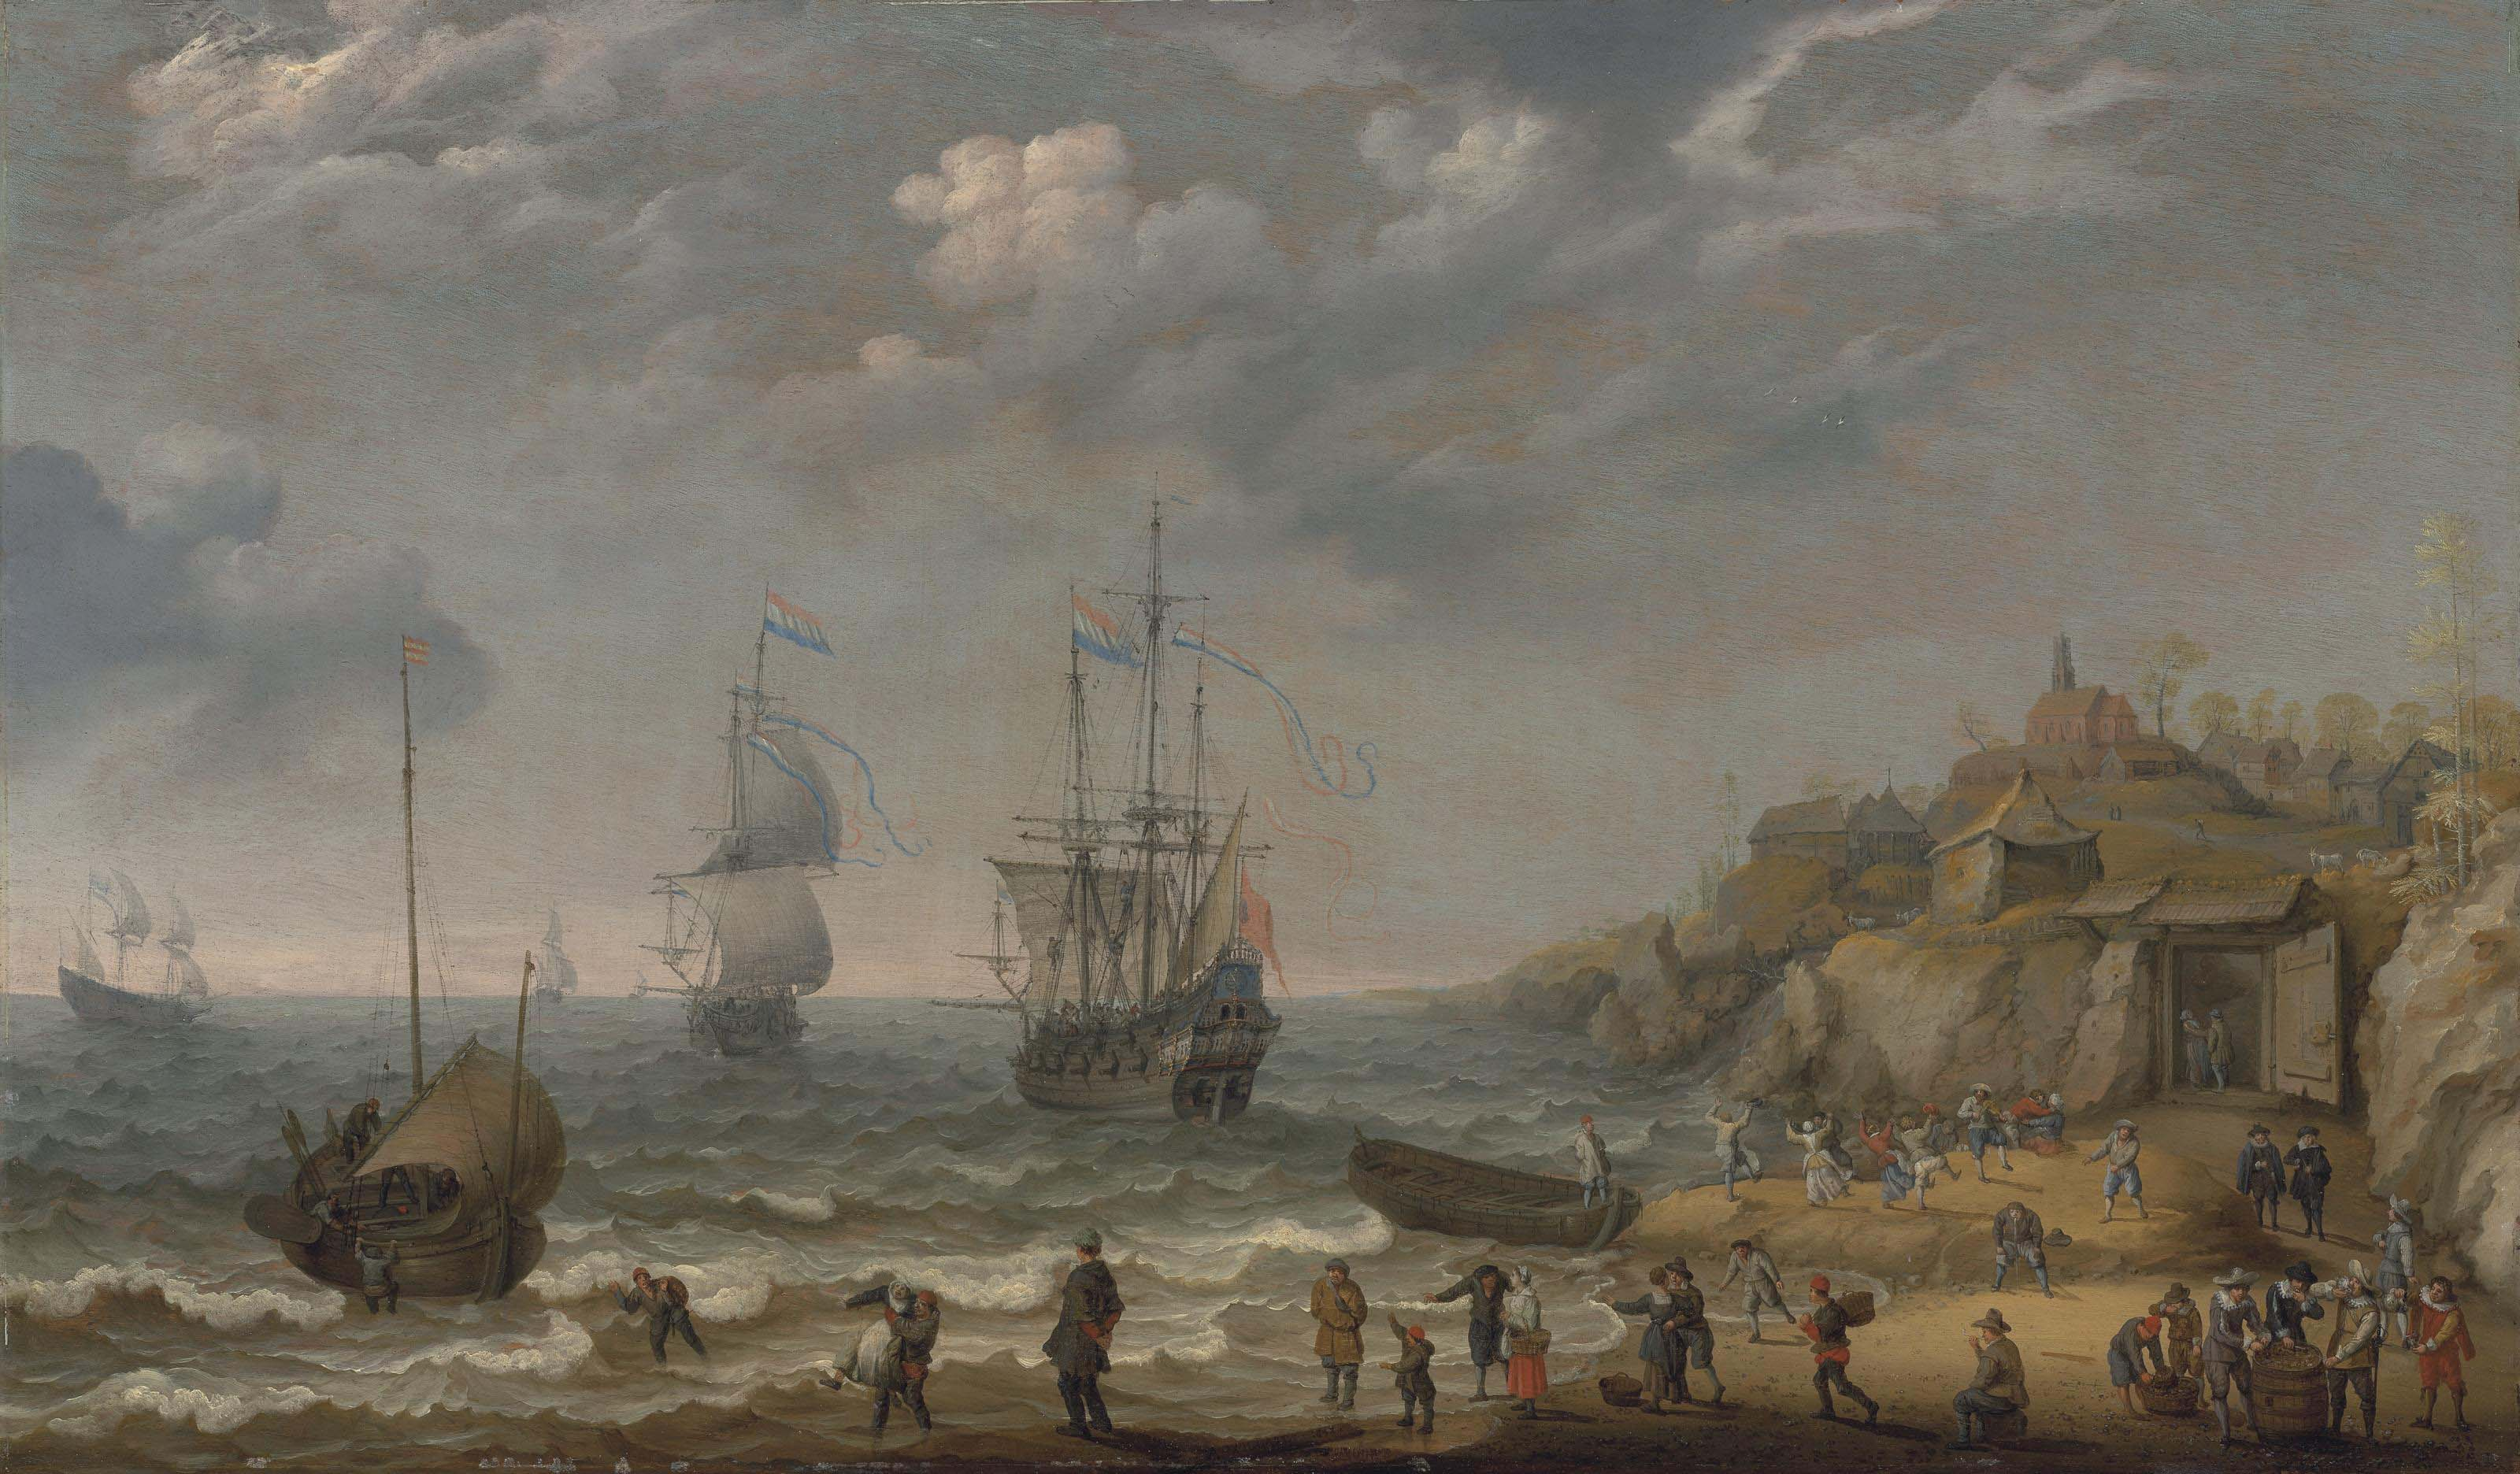 Dutch men-o'-war and other vessels by the coast with merrymakers and other figures